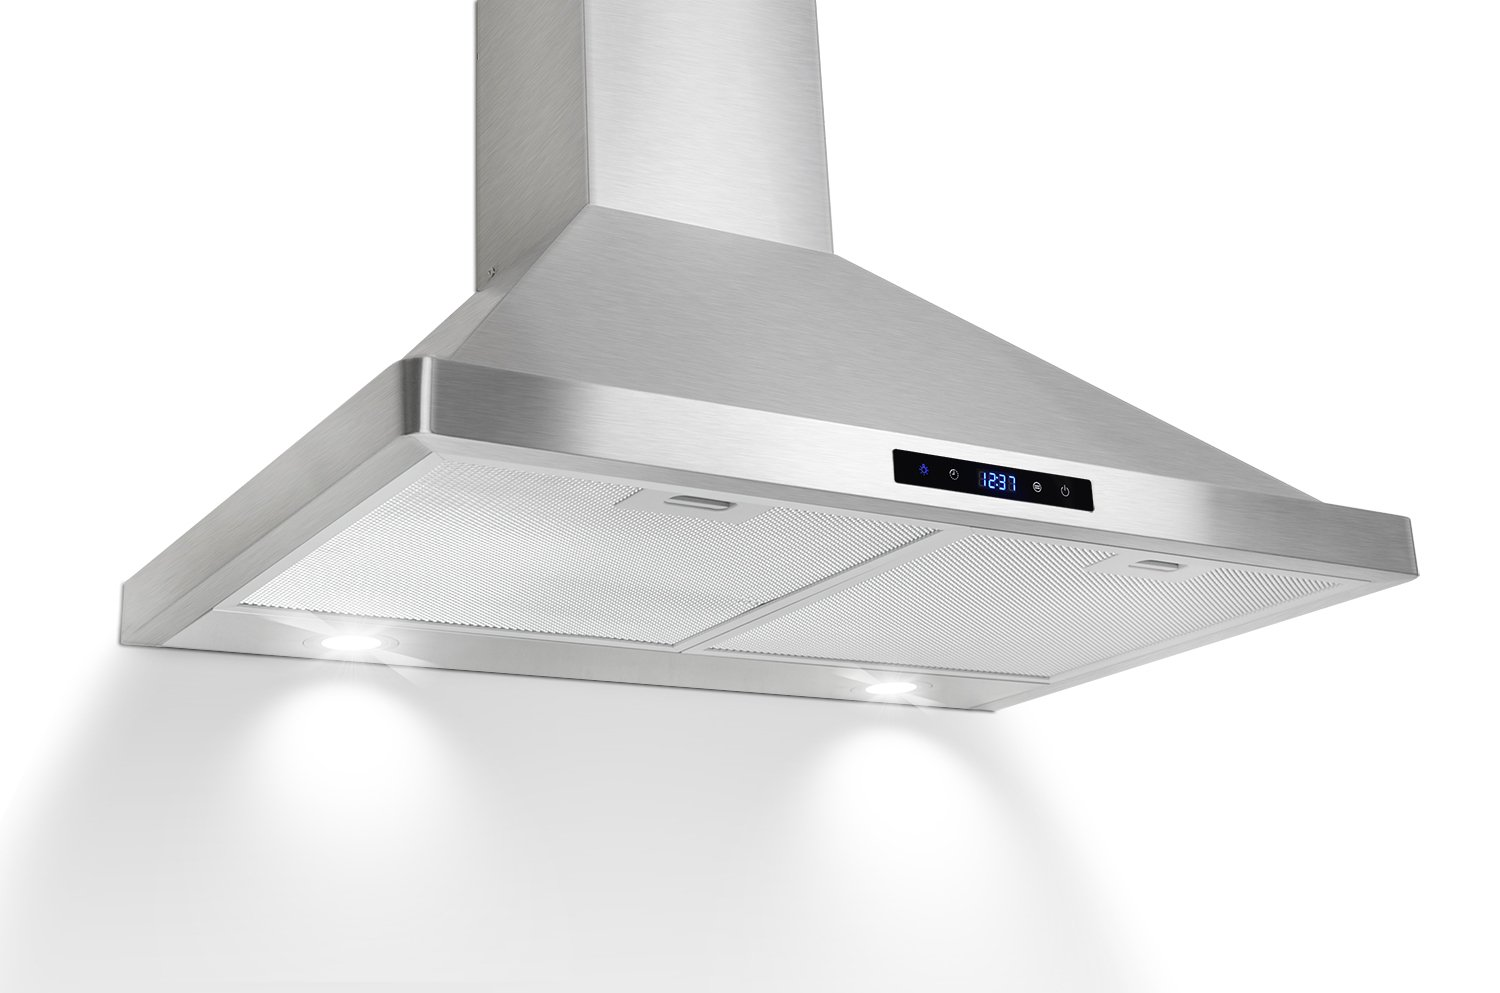 Akdy 30? kitchen wall mount stainless steel touch panel control range hood